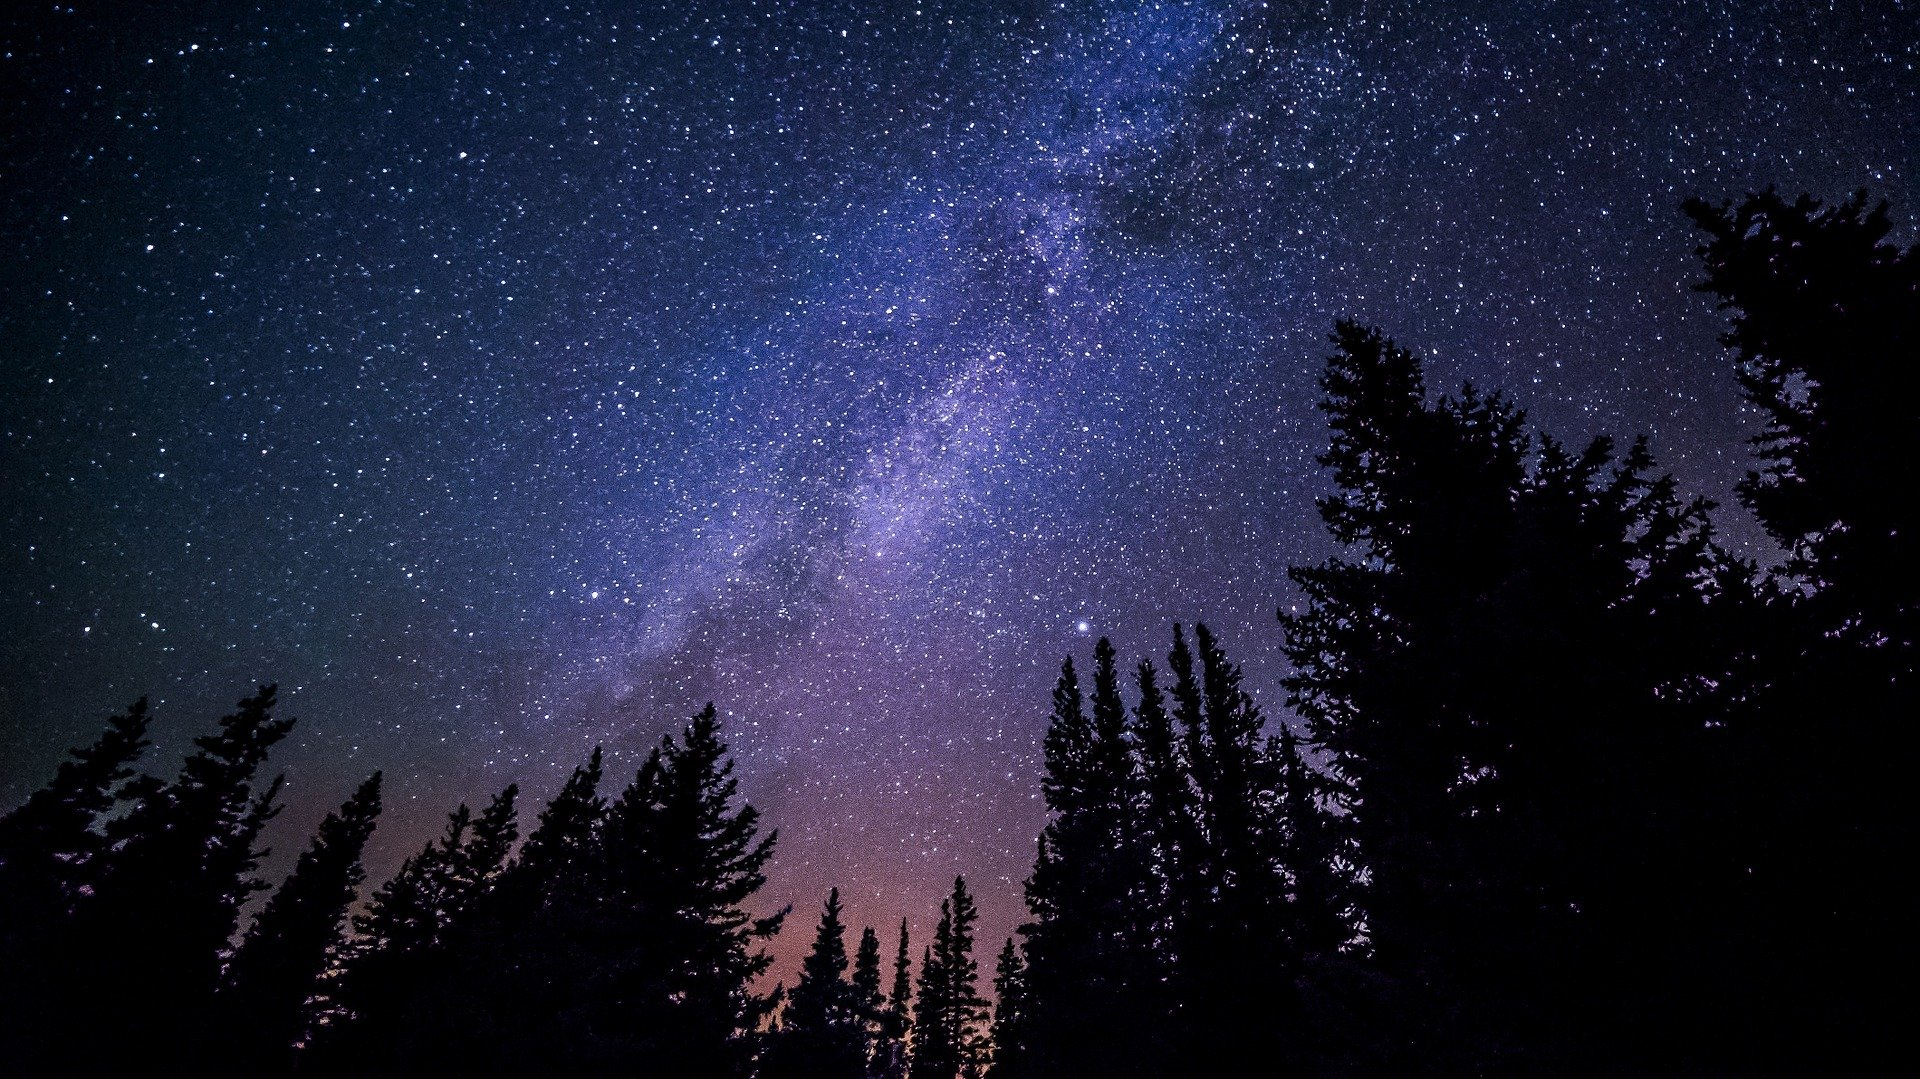 A star-filled nighttime photo of a dark blue sky that fades to pink near the horizon of pine trees